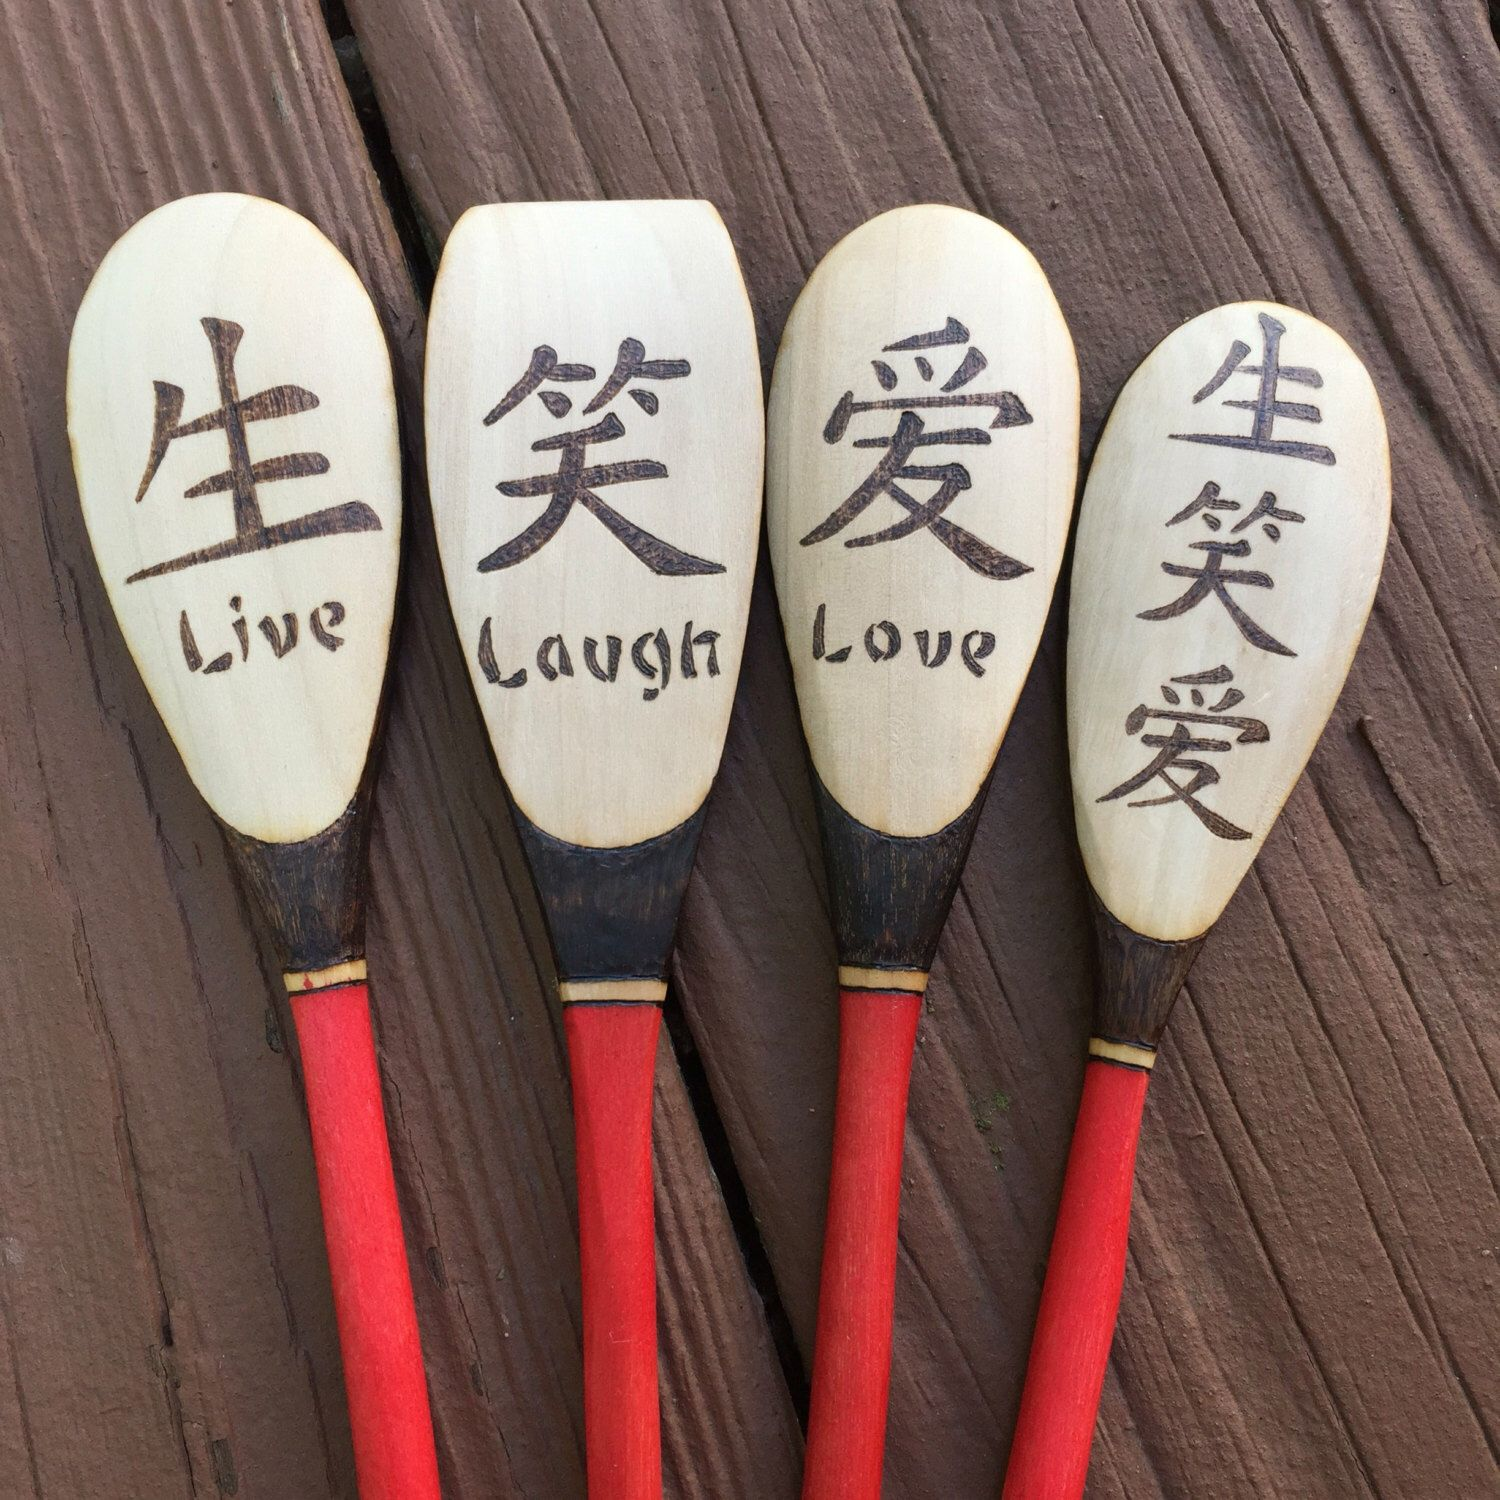 Wood Burned Live Laugh Love Spoons Asian Characters Asian Kitchen